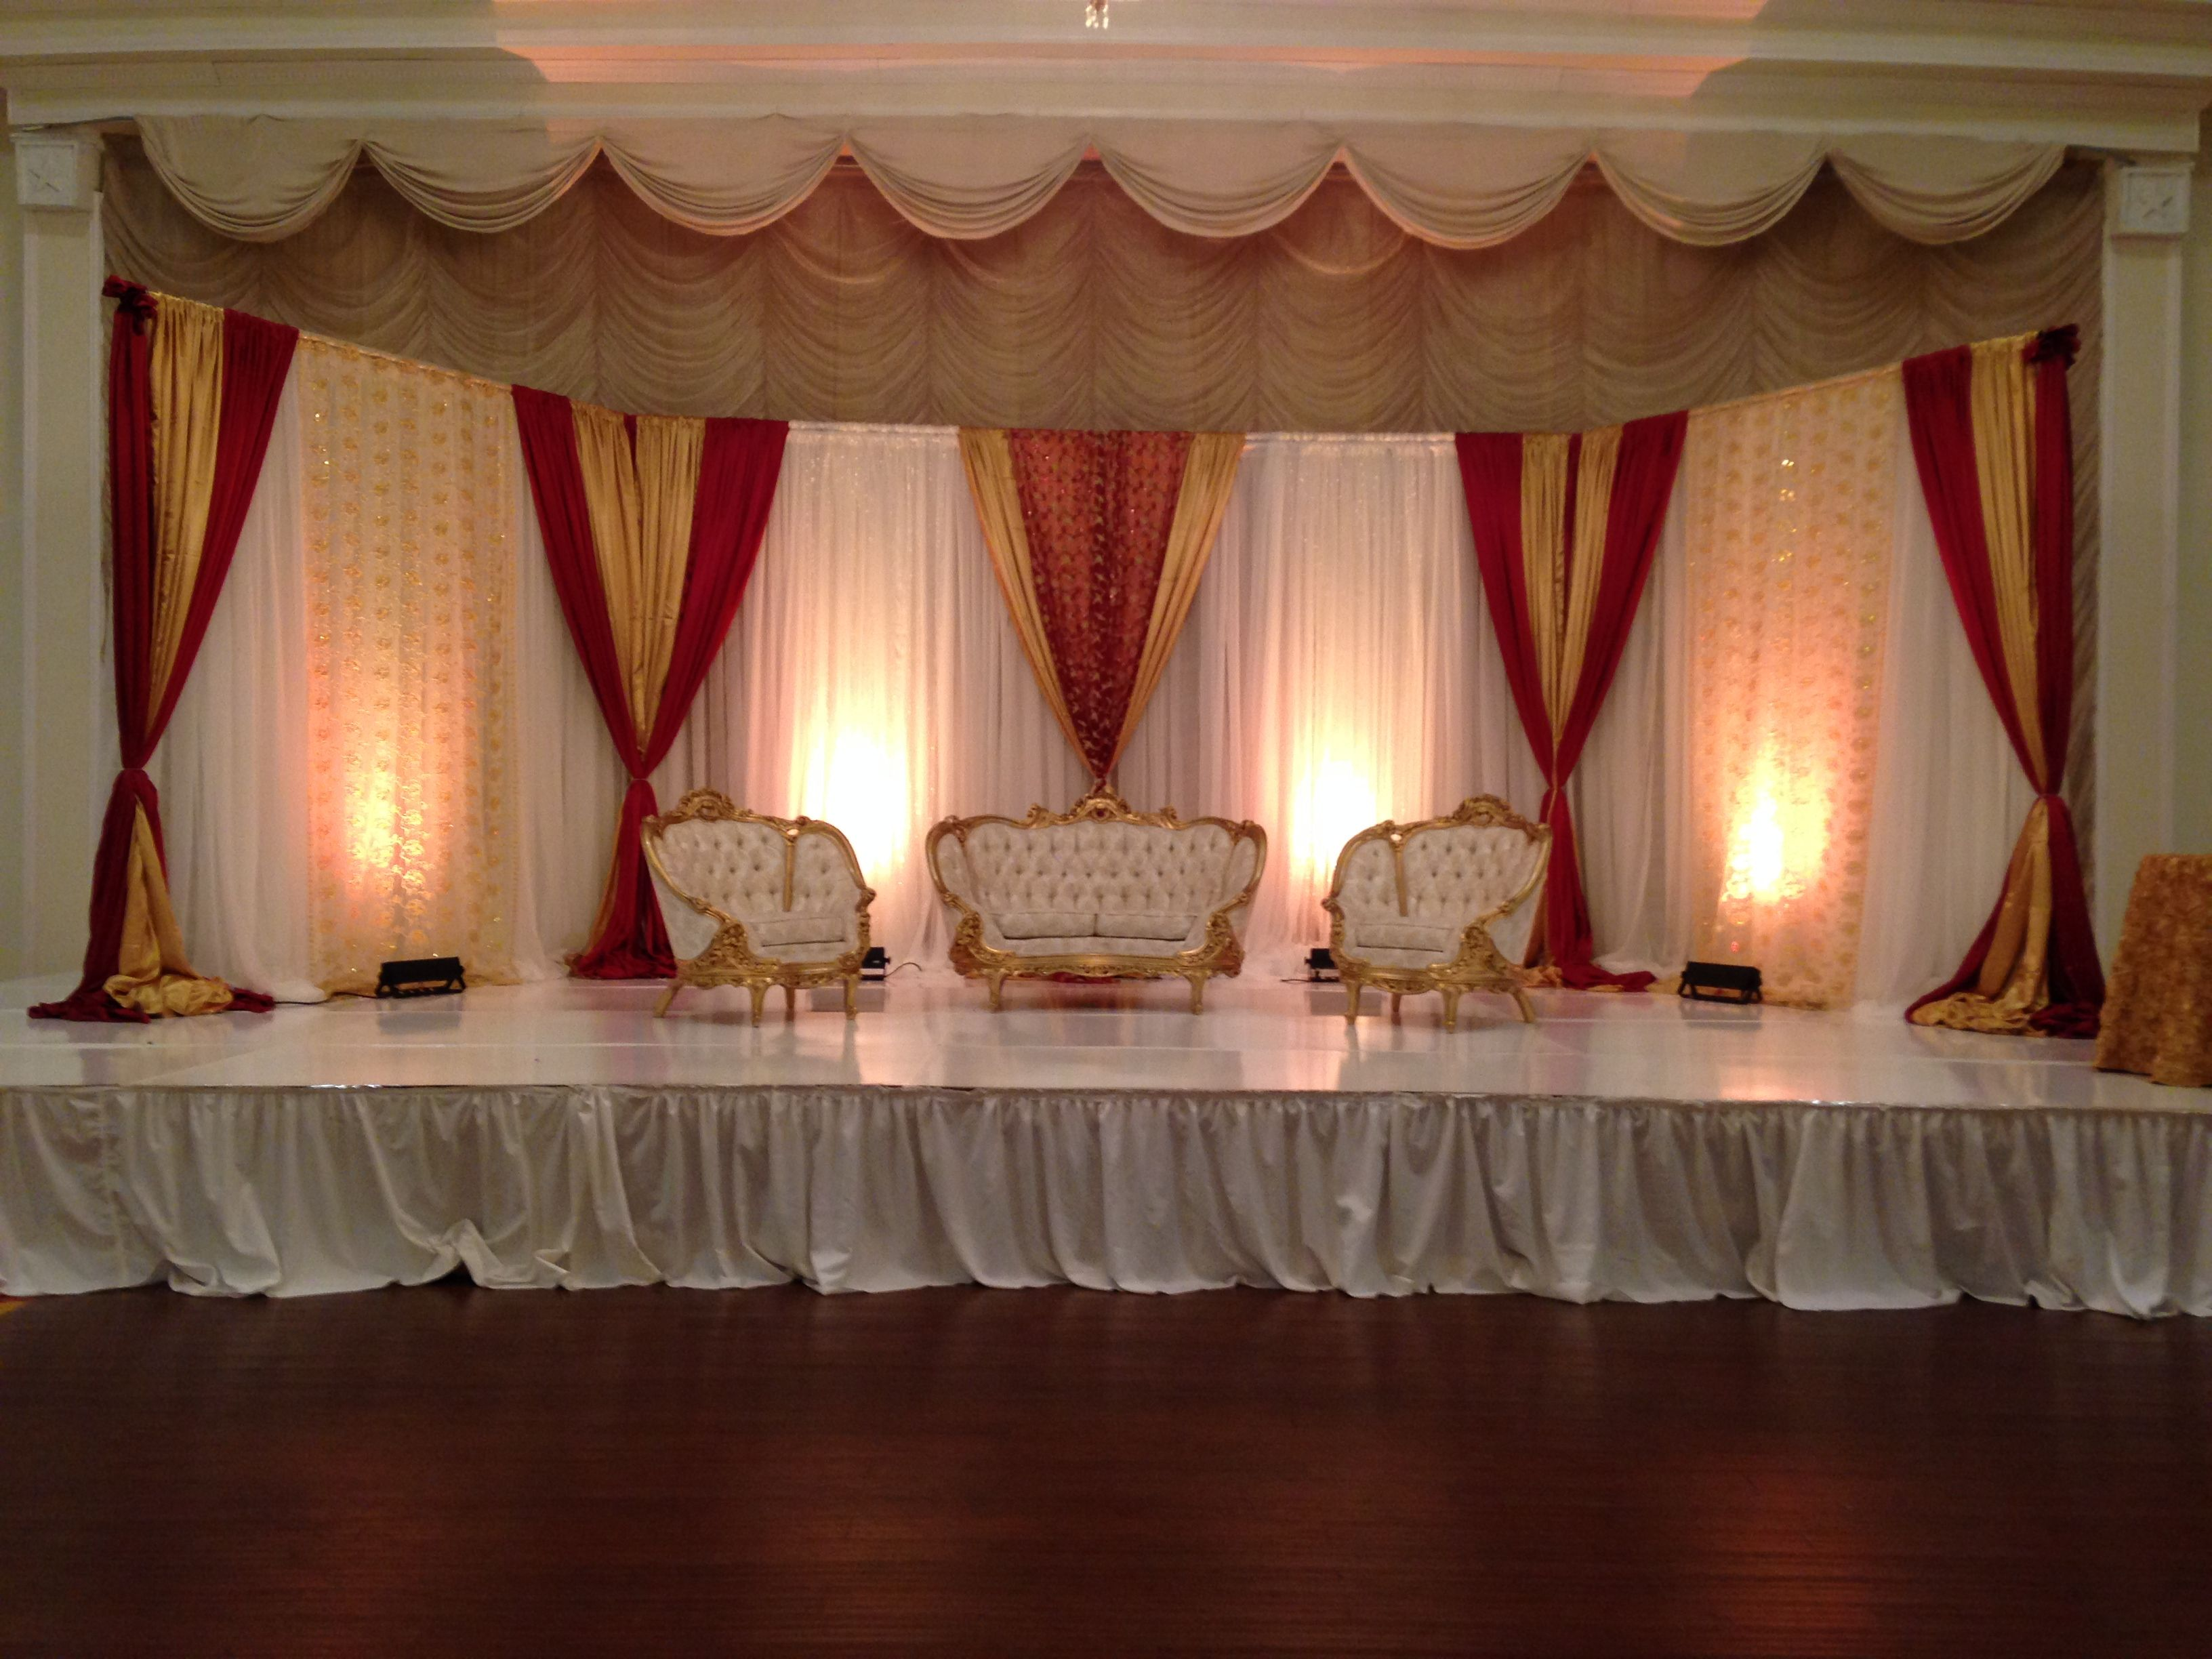 South Asian Wedding Backdrop Ivory Gold & Red Wedding Backdrop ...